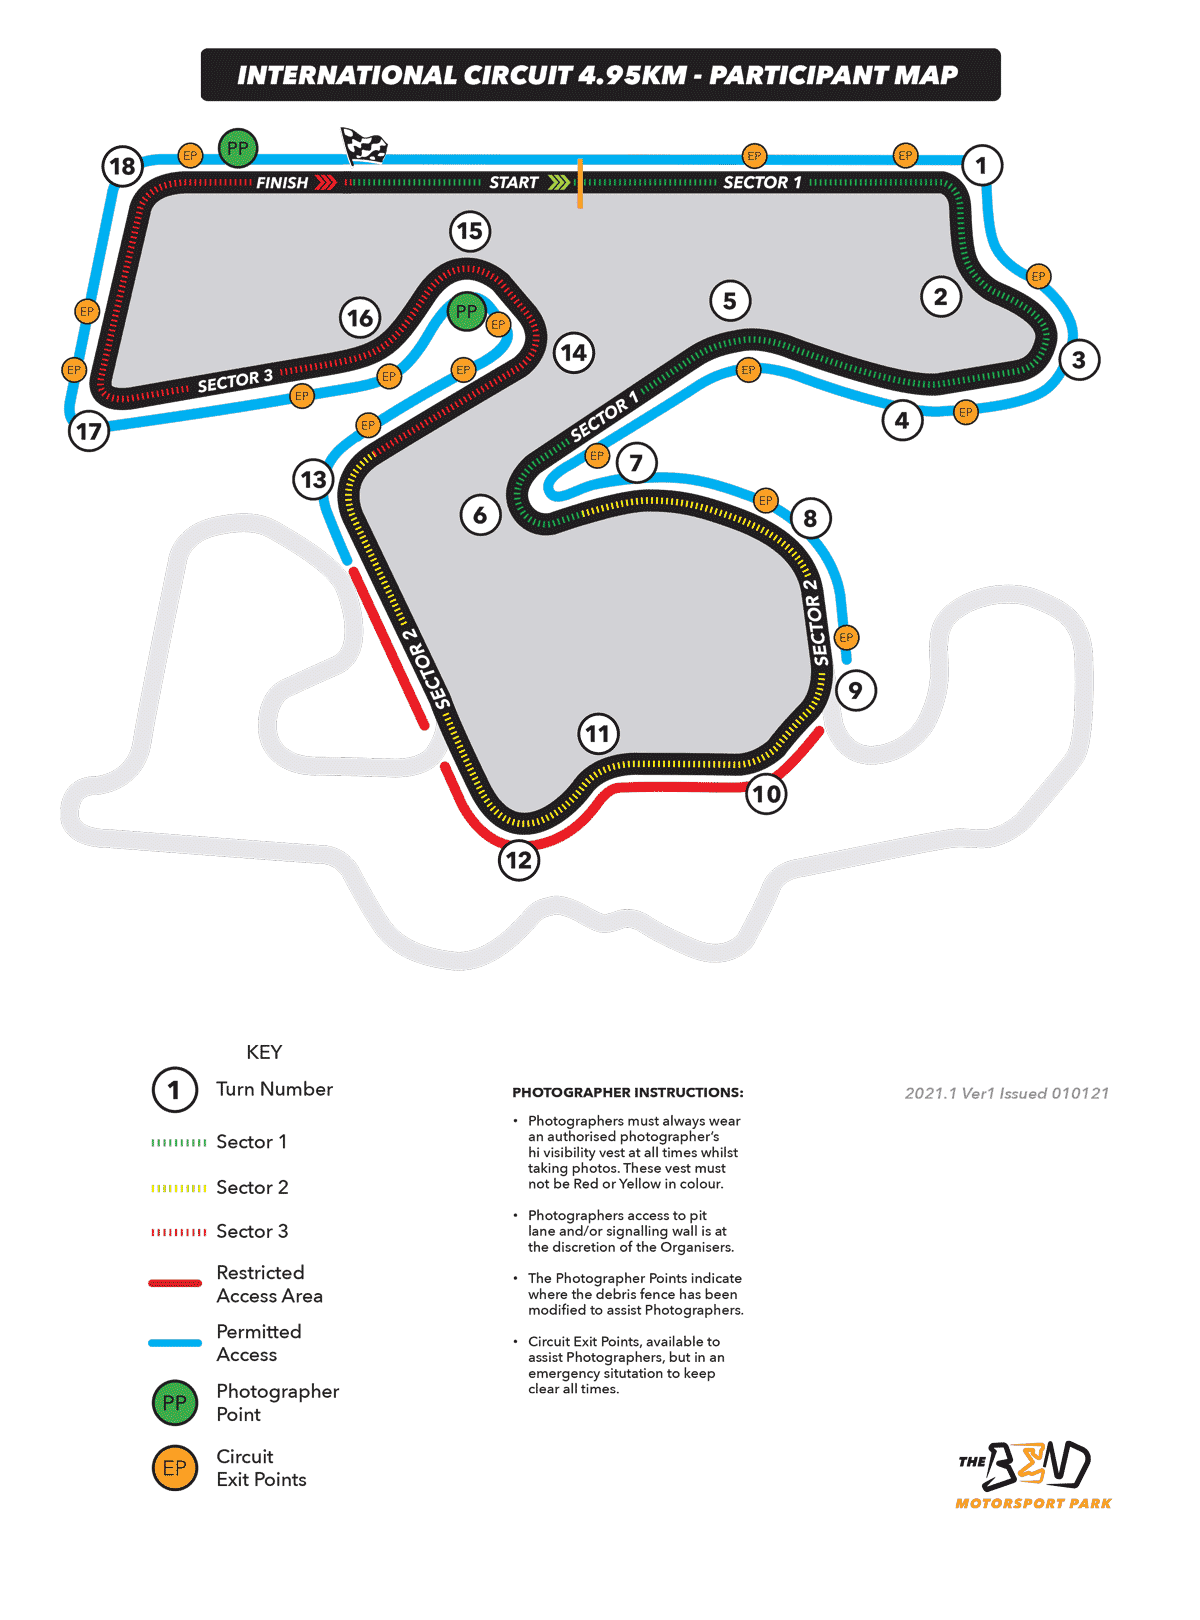 The Bend circuit - Track map